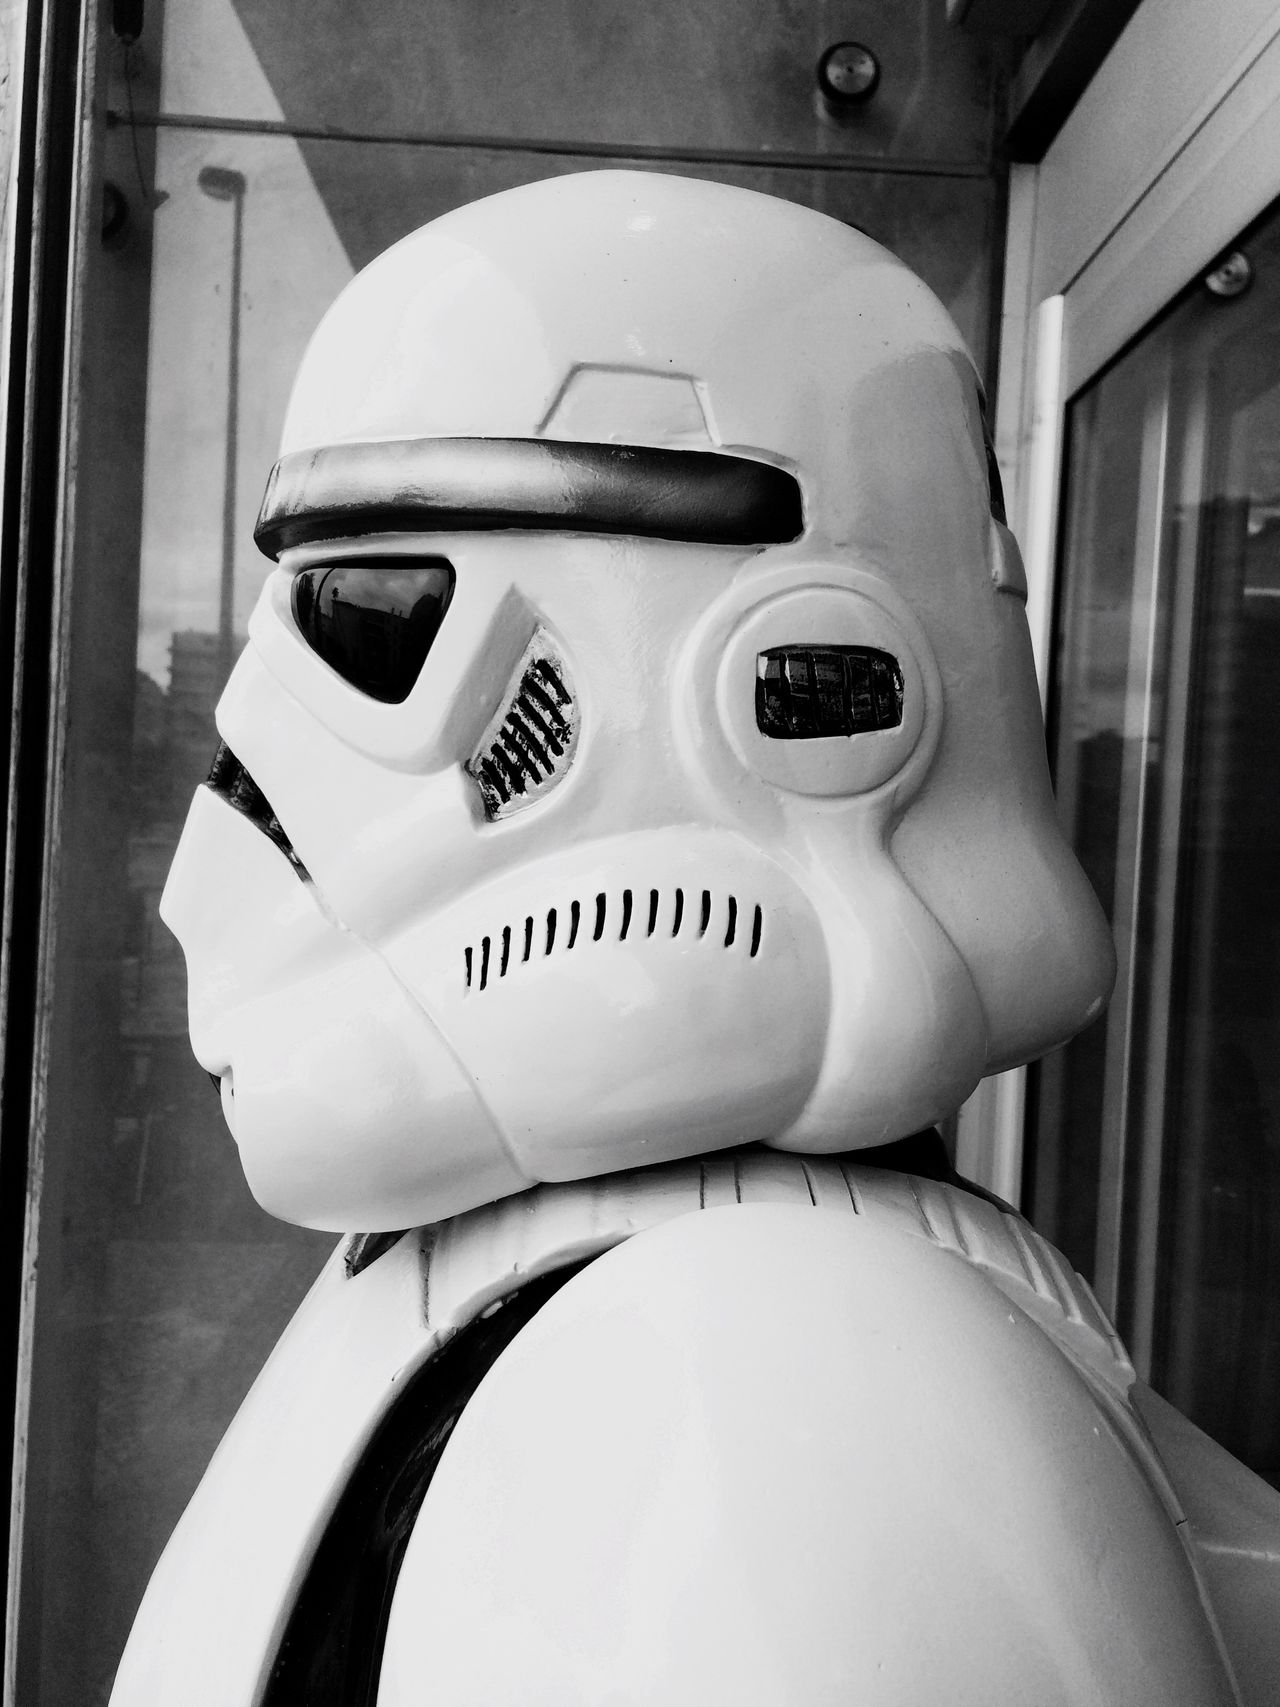 Monochrome Photography Stormtrooper Moviestar Stormtrooper STARWARS Stars Wars Trooper Stormtroopers Saga Stars Wars Black & White Monochromatic Blackandwhite Photography Monochrome Blackandwhite Portrait